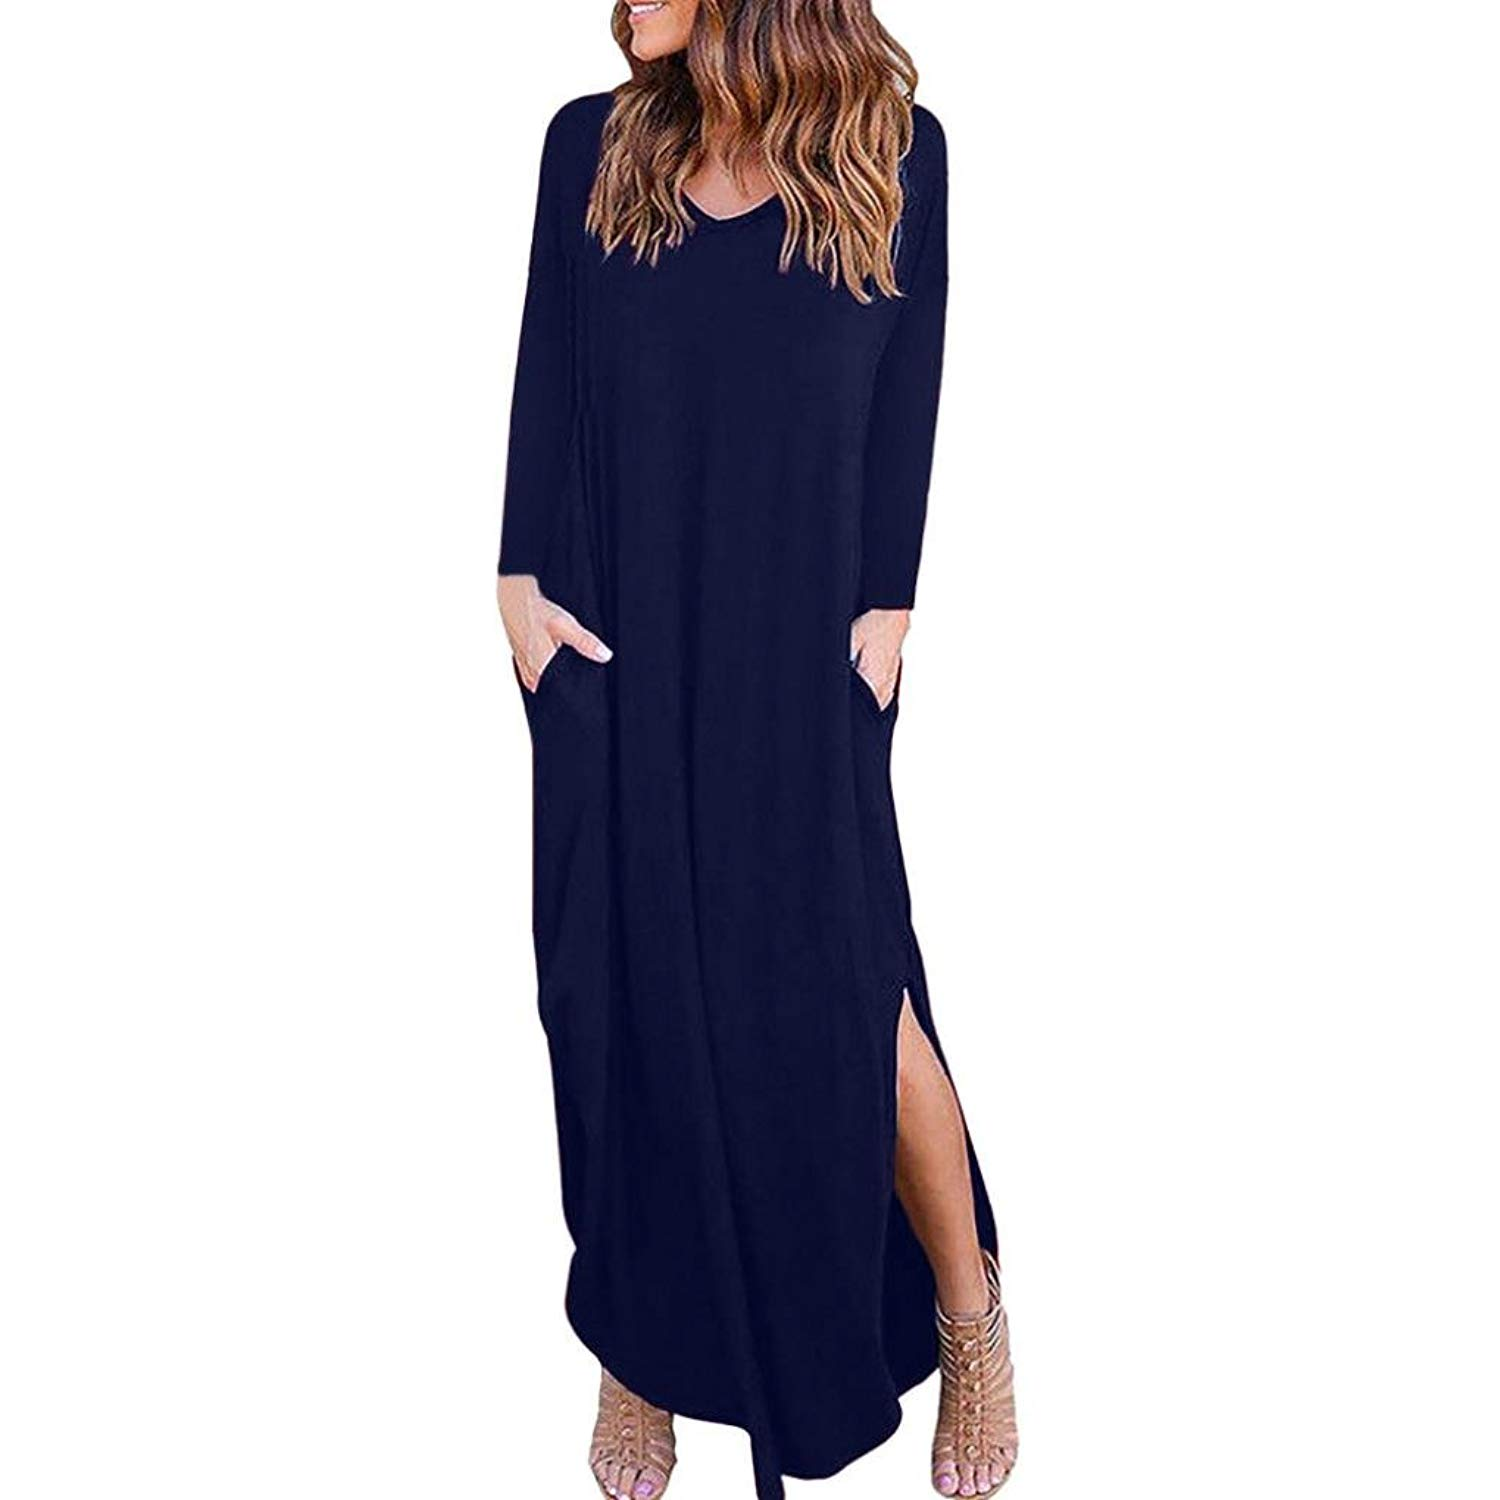 Cheap Cap Sleeve Maxi Dress Casual Find Cap Sleeve Maxi Dress